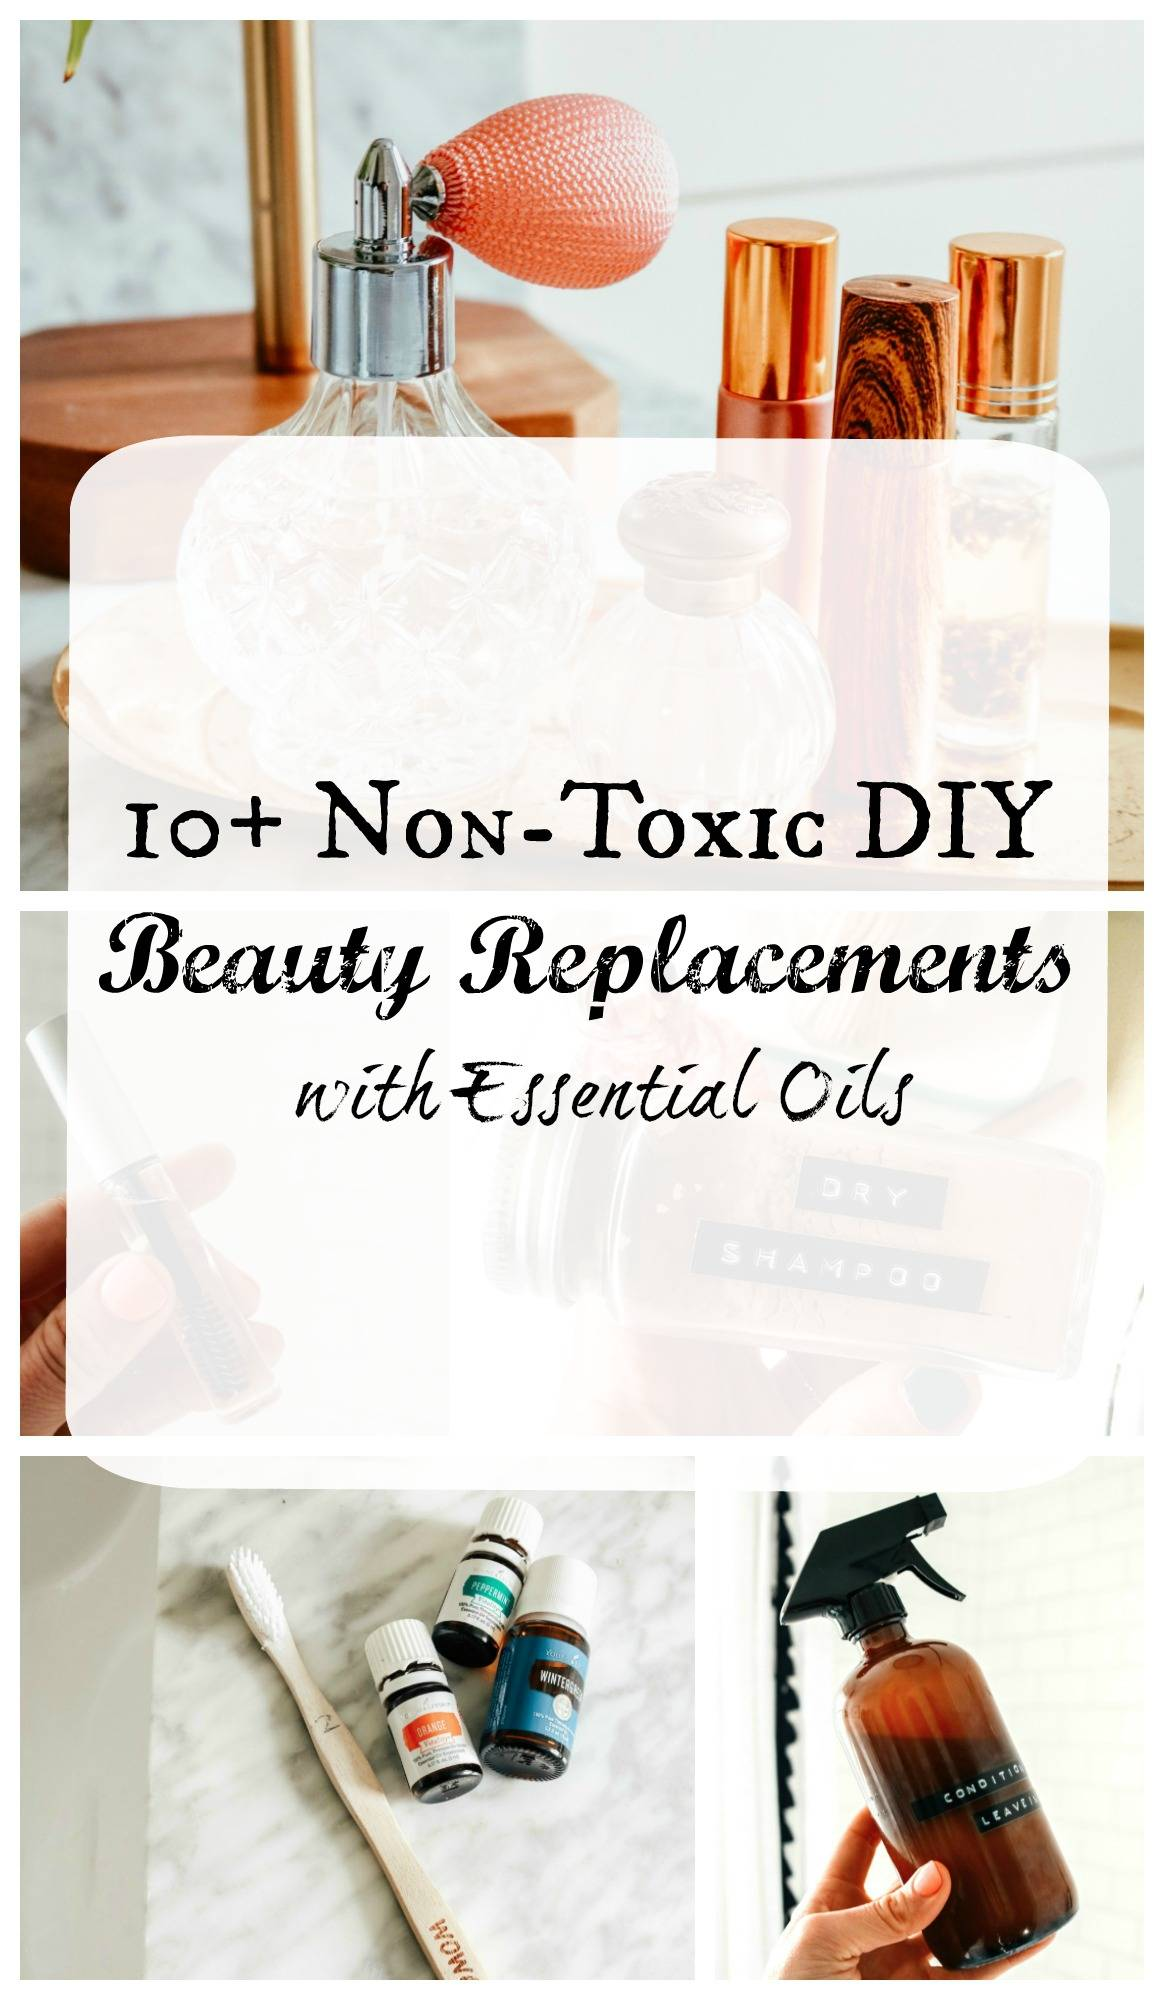 Essential Oils 10 all natural perfumes and DIY Non Toxic Lash serum and perfume